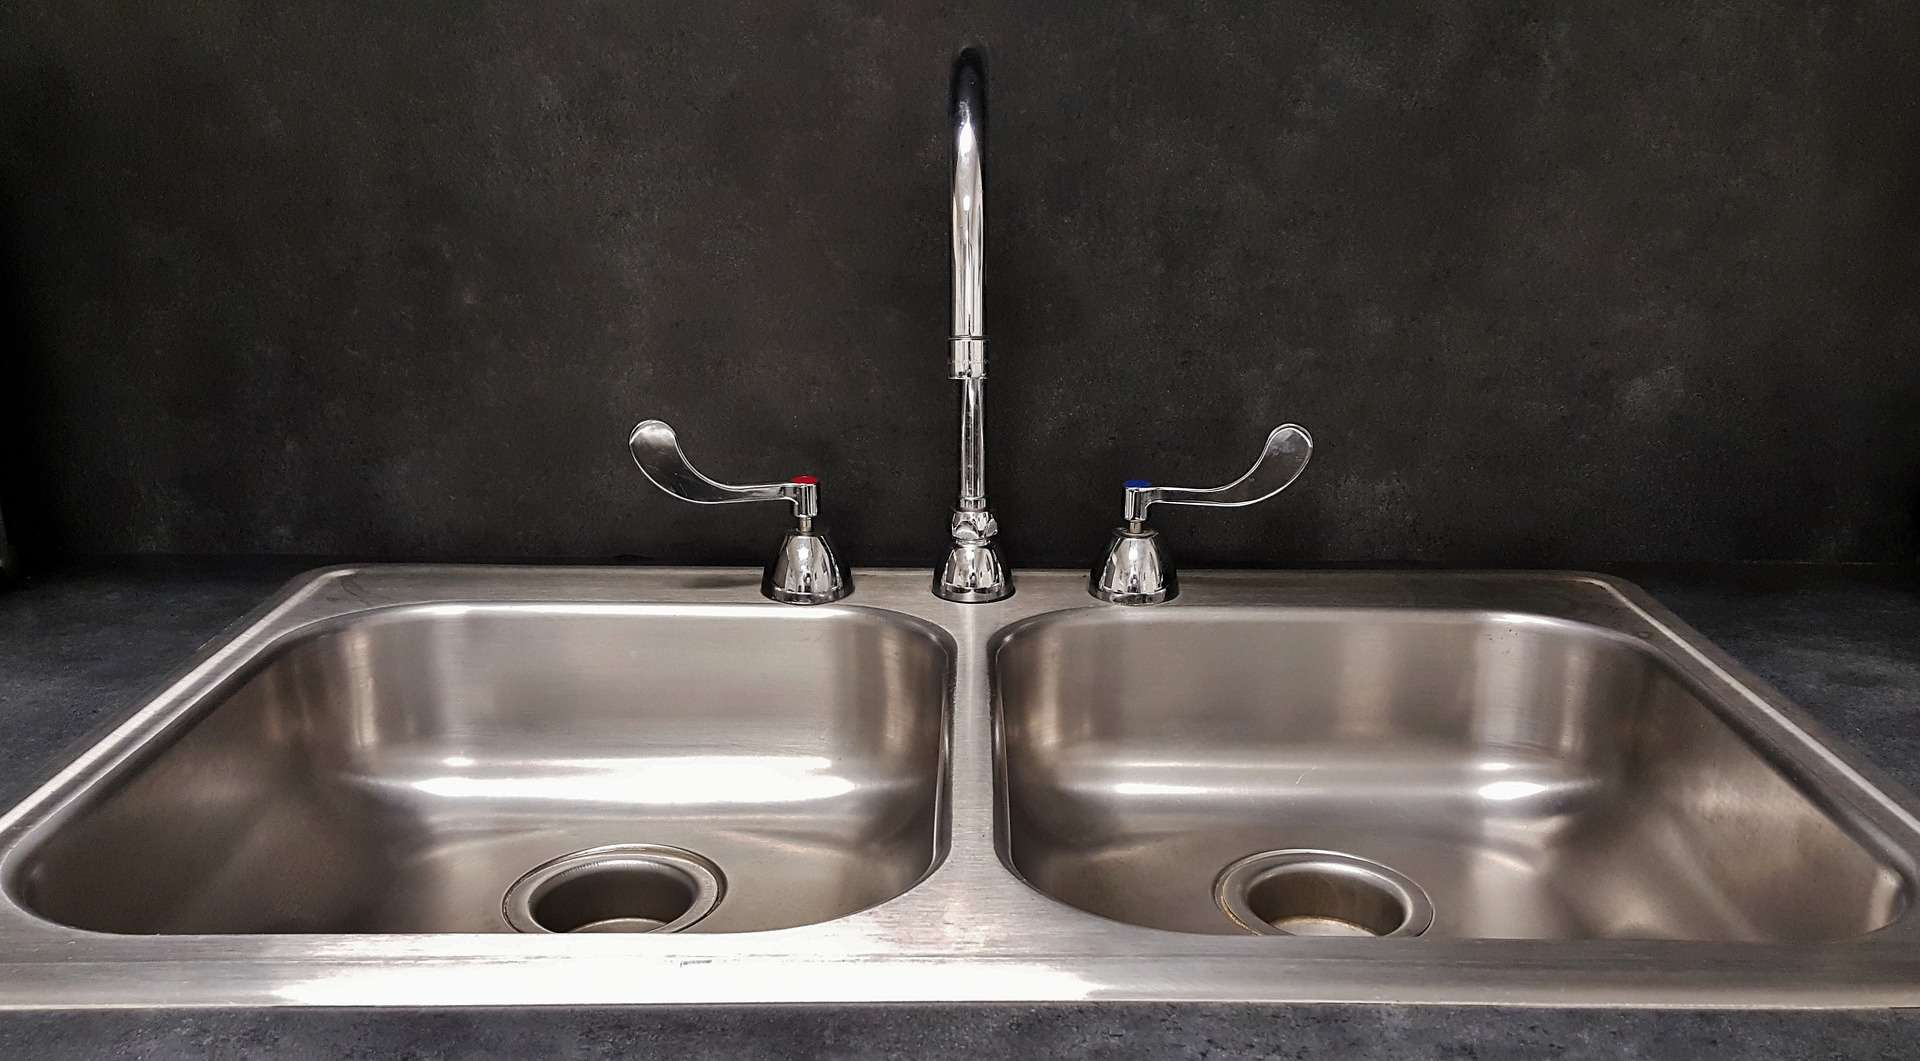 Best Kitchen Taps Best Kitchen Faucets Reviewed For 2019 Buyers Guide Ratings